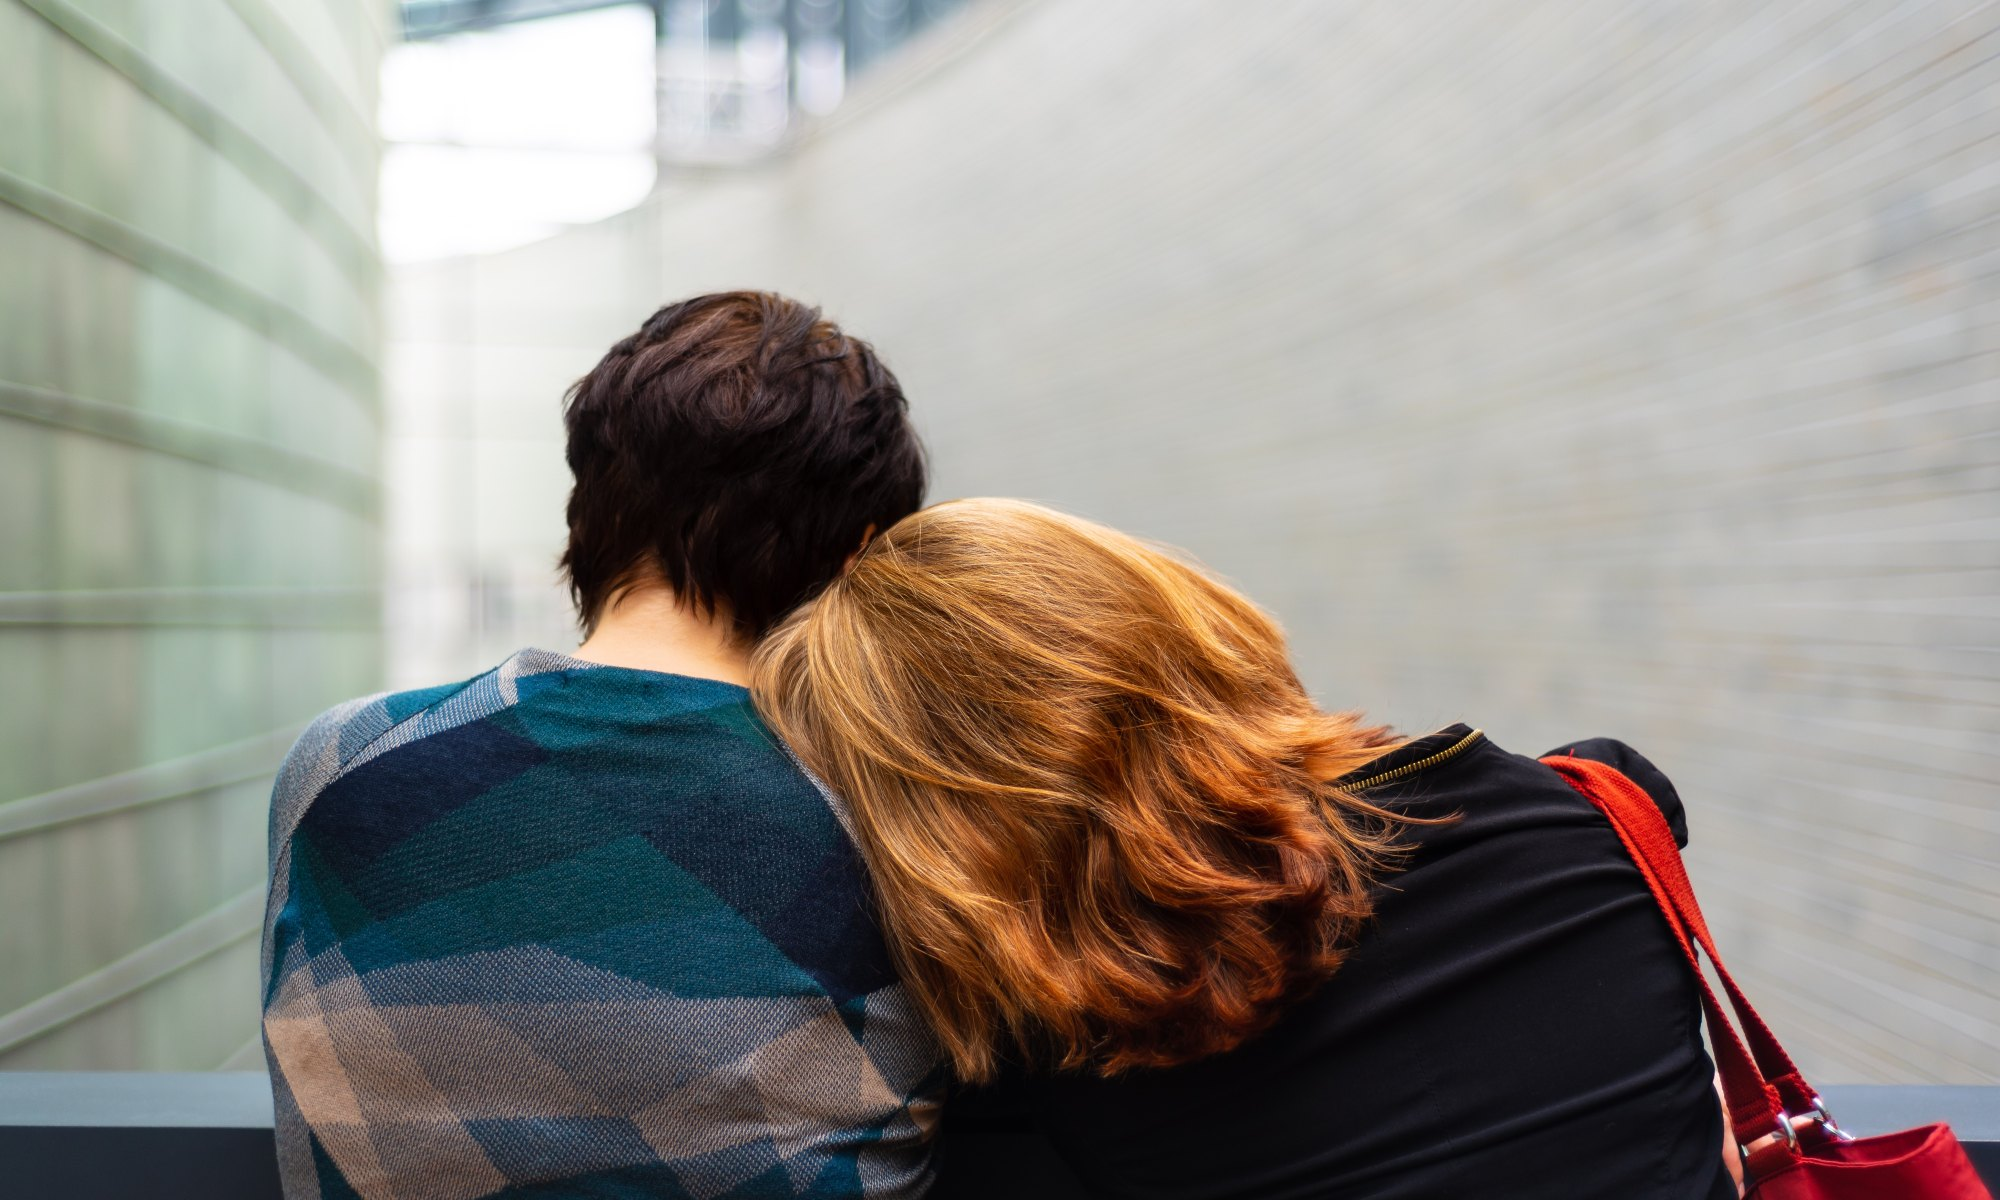 A female leaning her head against a man's shoulder